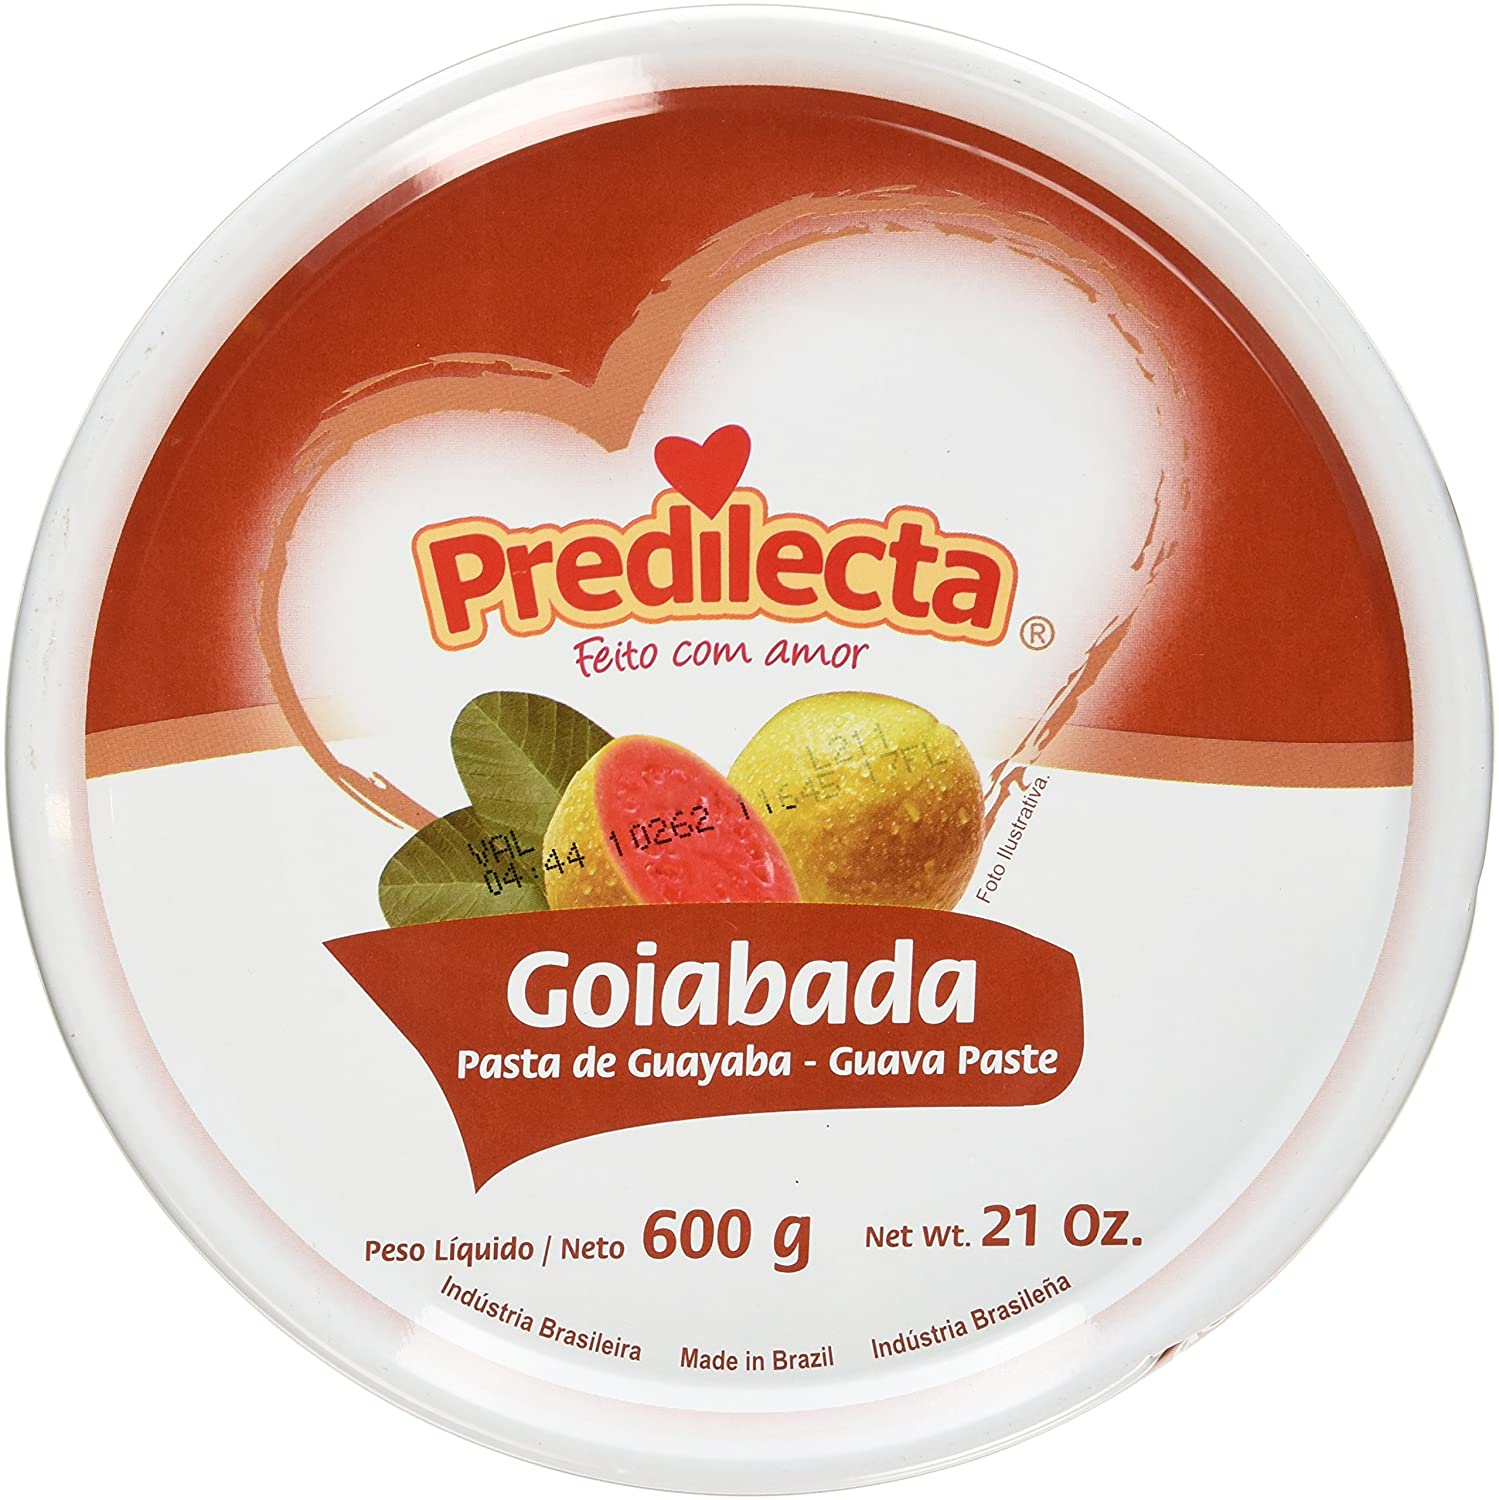 Amazon.com : Predilecta - Goiabada 600g | Guava Paste 21oz - Made in Brazil : Fruitcakes : Grocery & Gourmet Food